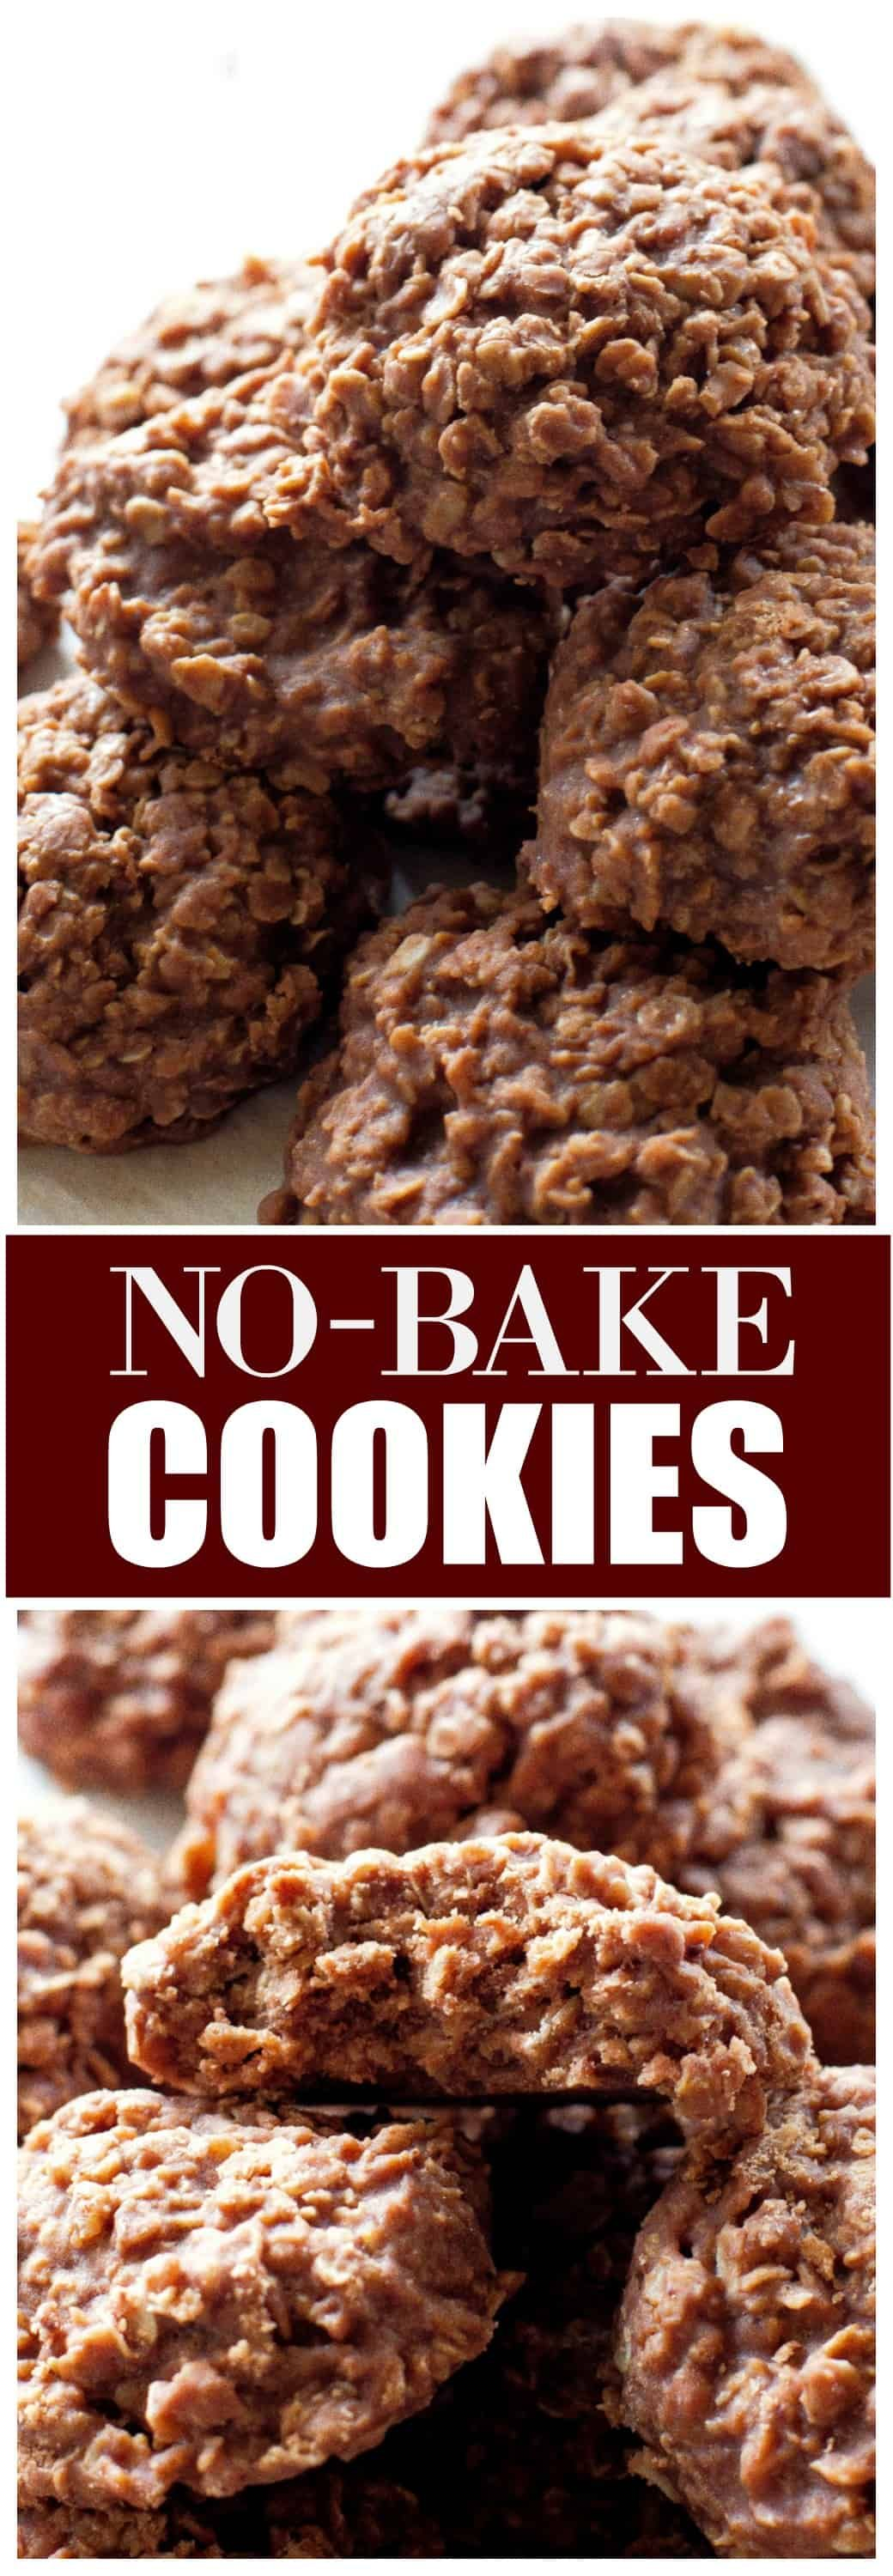 Cookies NoBake Cookies are chocolate peanut butter cookies made with oats Everything is done on the stove so you dont need to turn on your oven